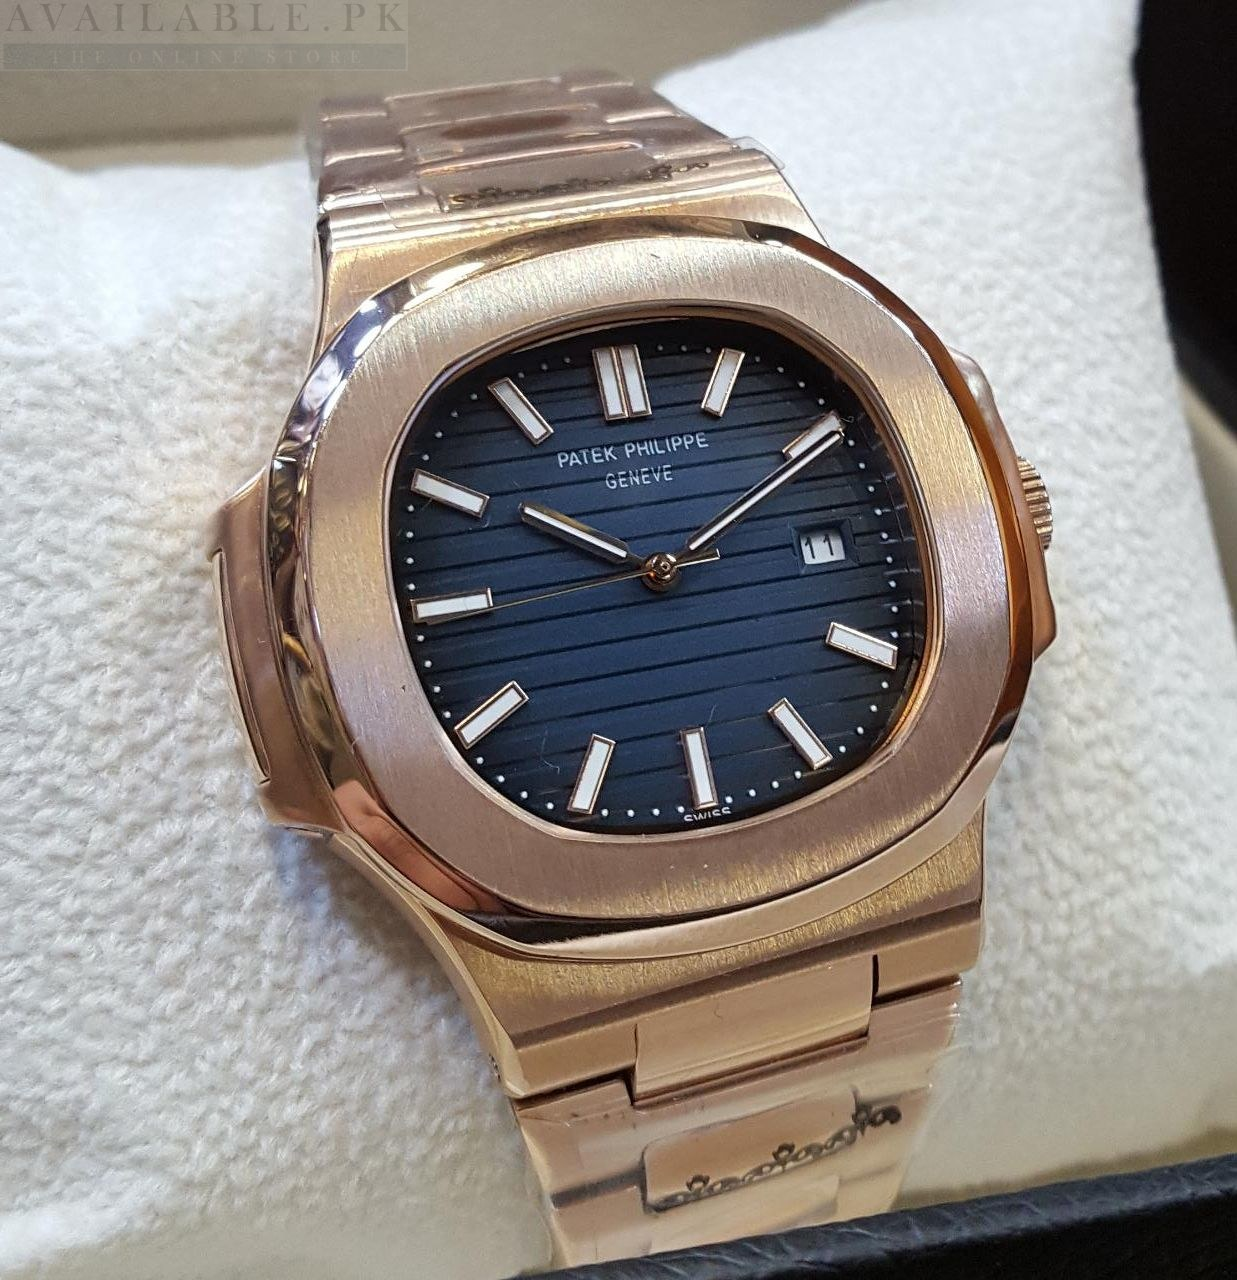 Patek philippe nautilus watches blue dial women 39 s watch available pk for Patek philippe women